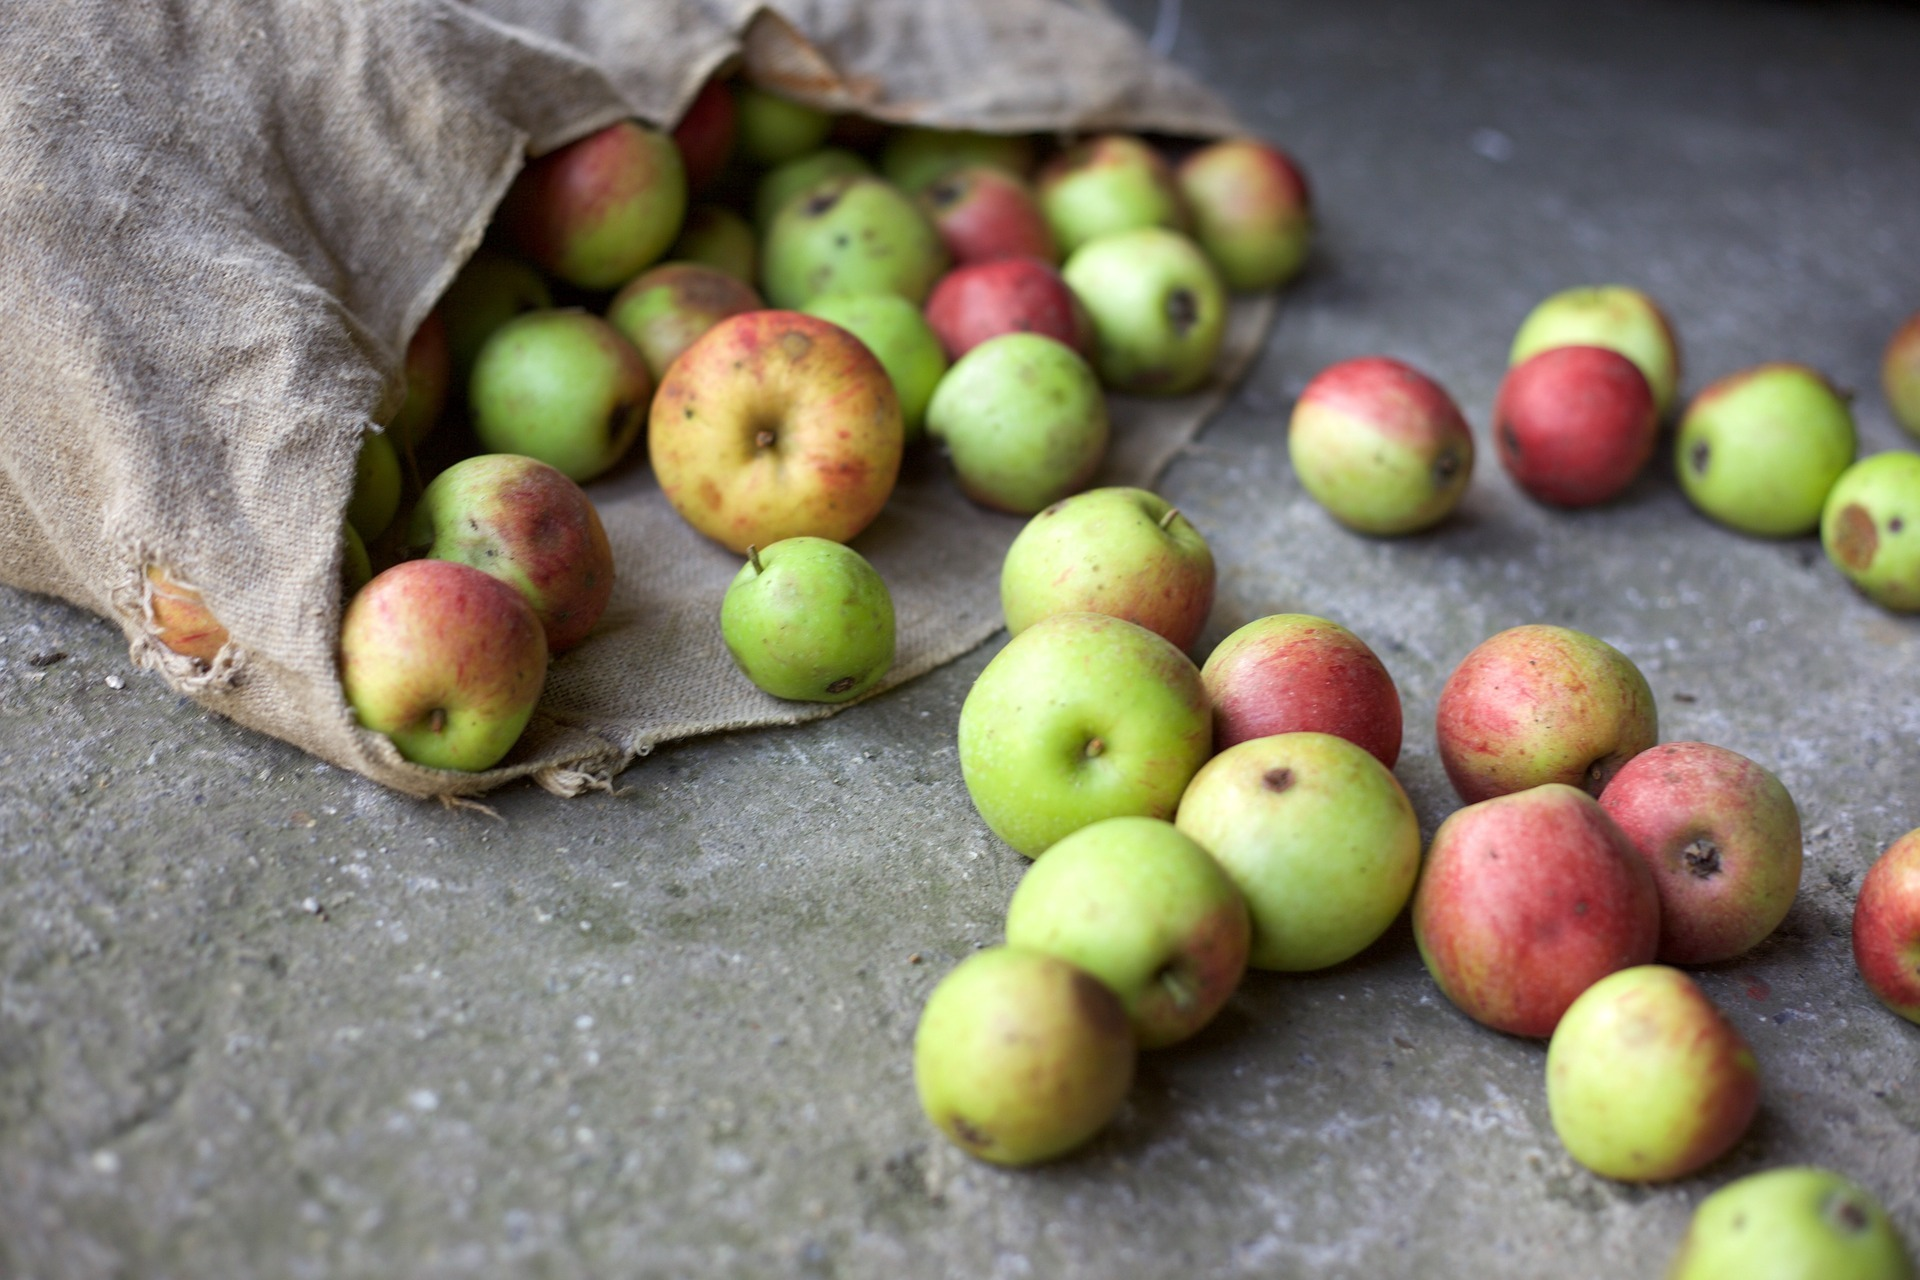 Apples in a sack sitting on its side with excess apples falling out